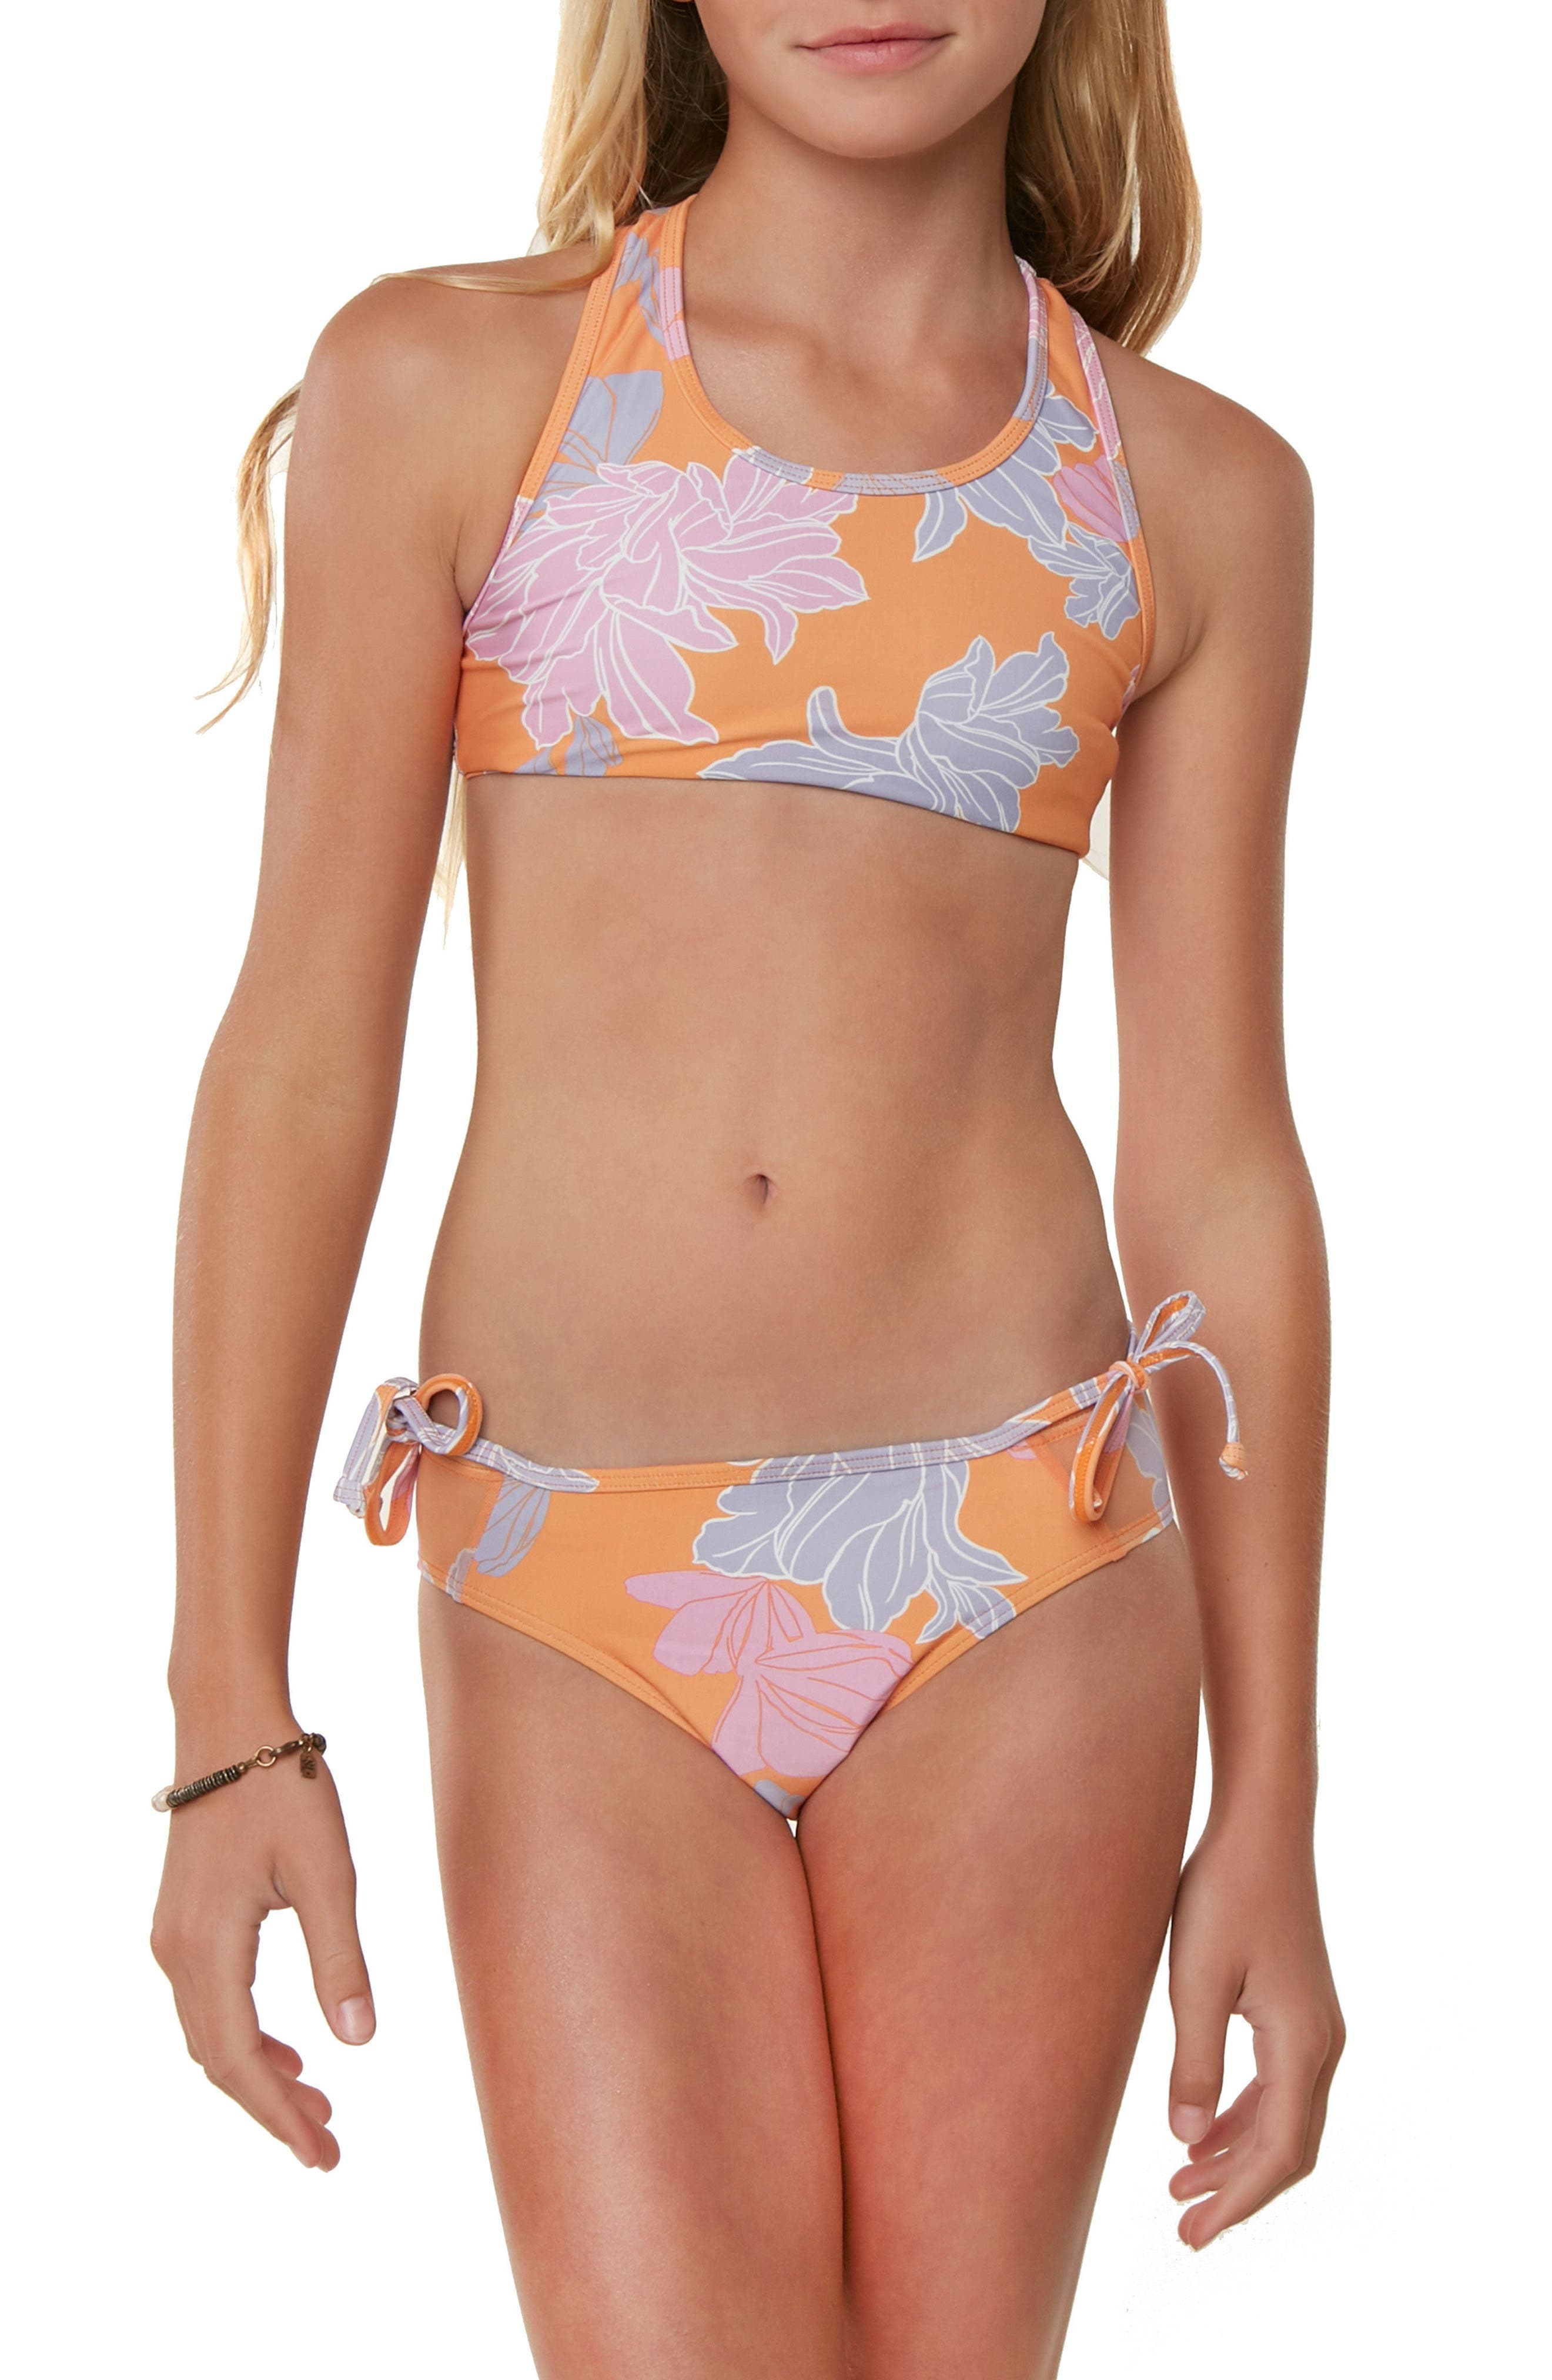 Zilla Floral Two-Piece Swimsuit,                             Alternate thumbnail 2, color,                             804